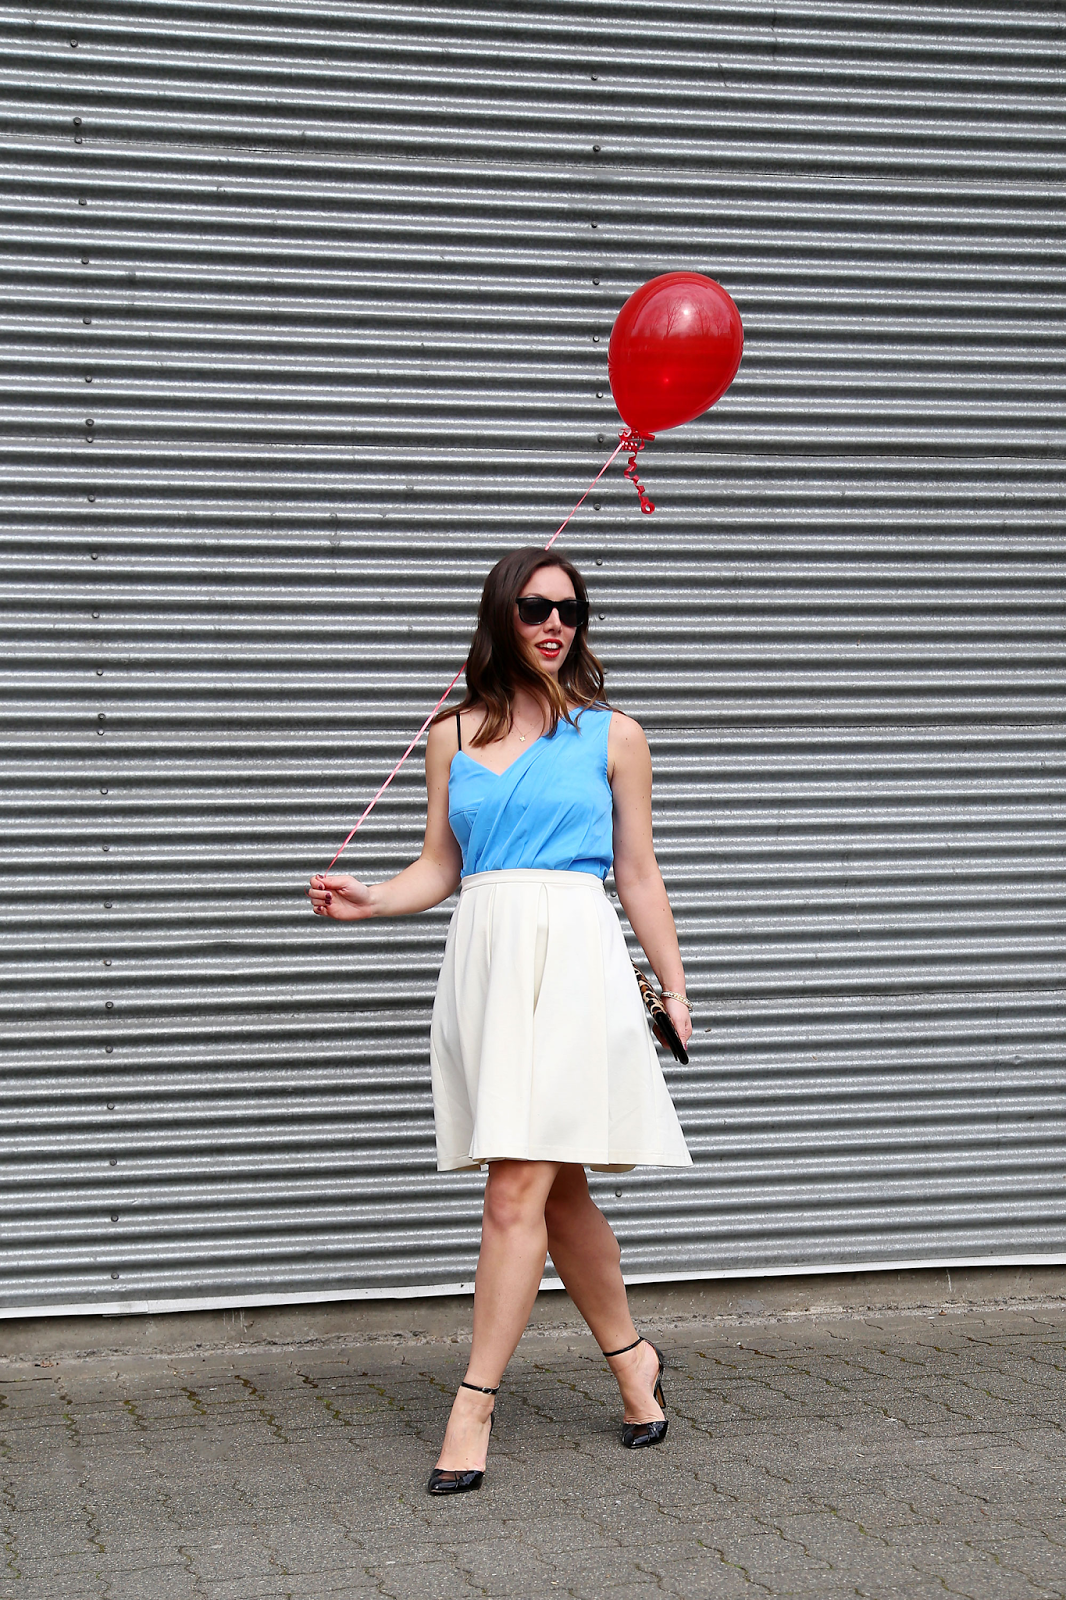 to vogue or bust, vancouver style blog, vancouver fashion blog, vancouver fashion, canadian fashion blog, alexandra grant, obakki dress, obakki a-line skirt, sole society heels, club monaco clutch, forever 21 bracelet, xo veronika necklace, h&m sunglasses, spring style, birthday outfit